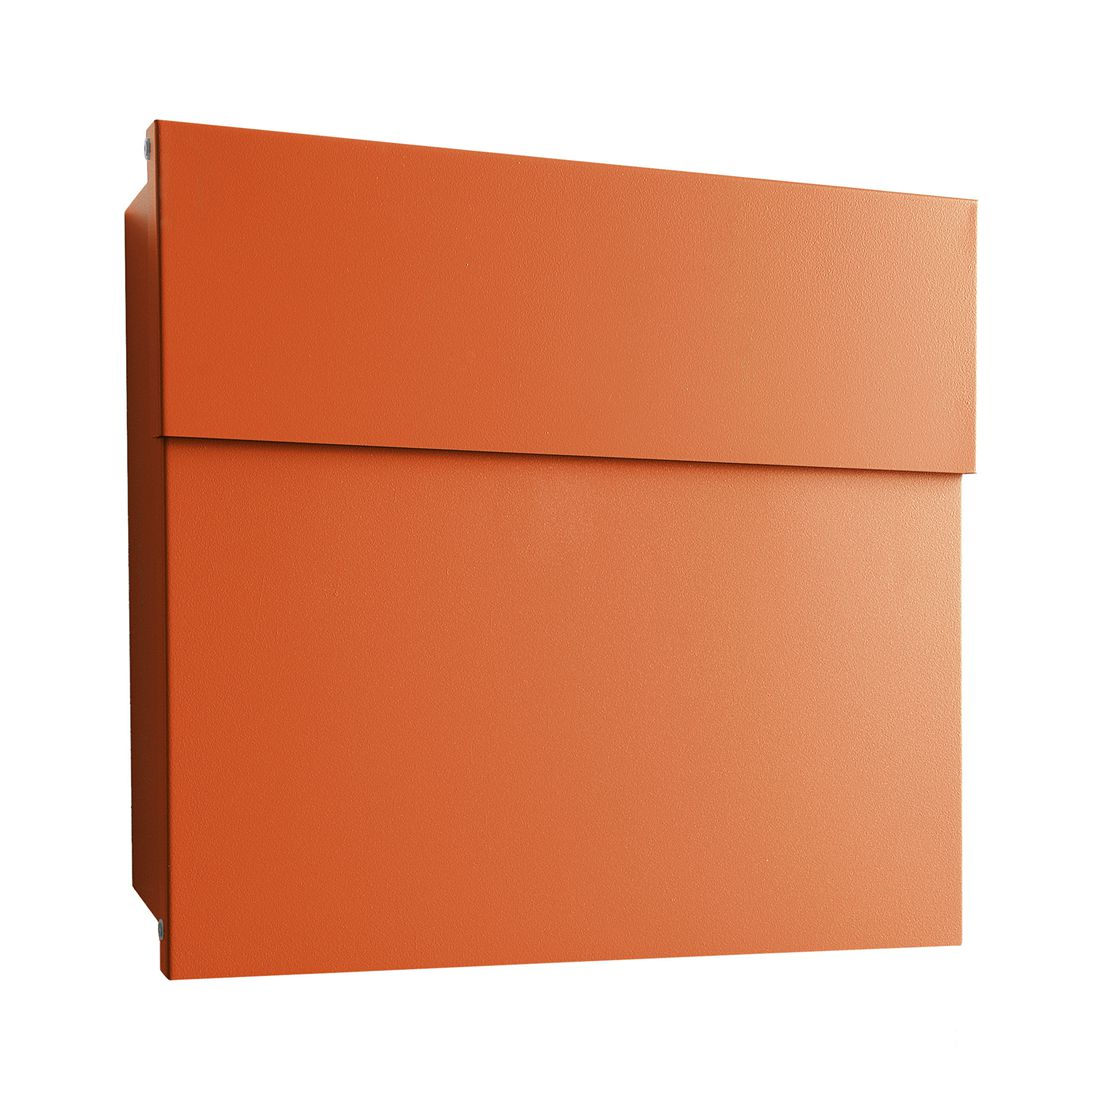 Briefkasten Letterman IV Wandversion - Stahl Pulverbeschichtet Orange, Radius